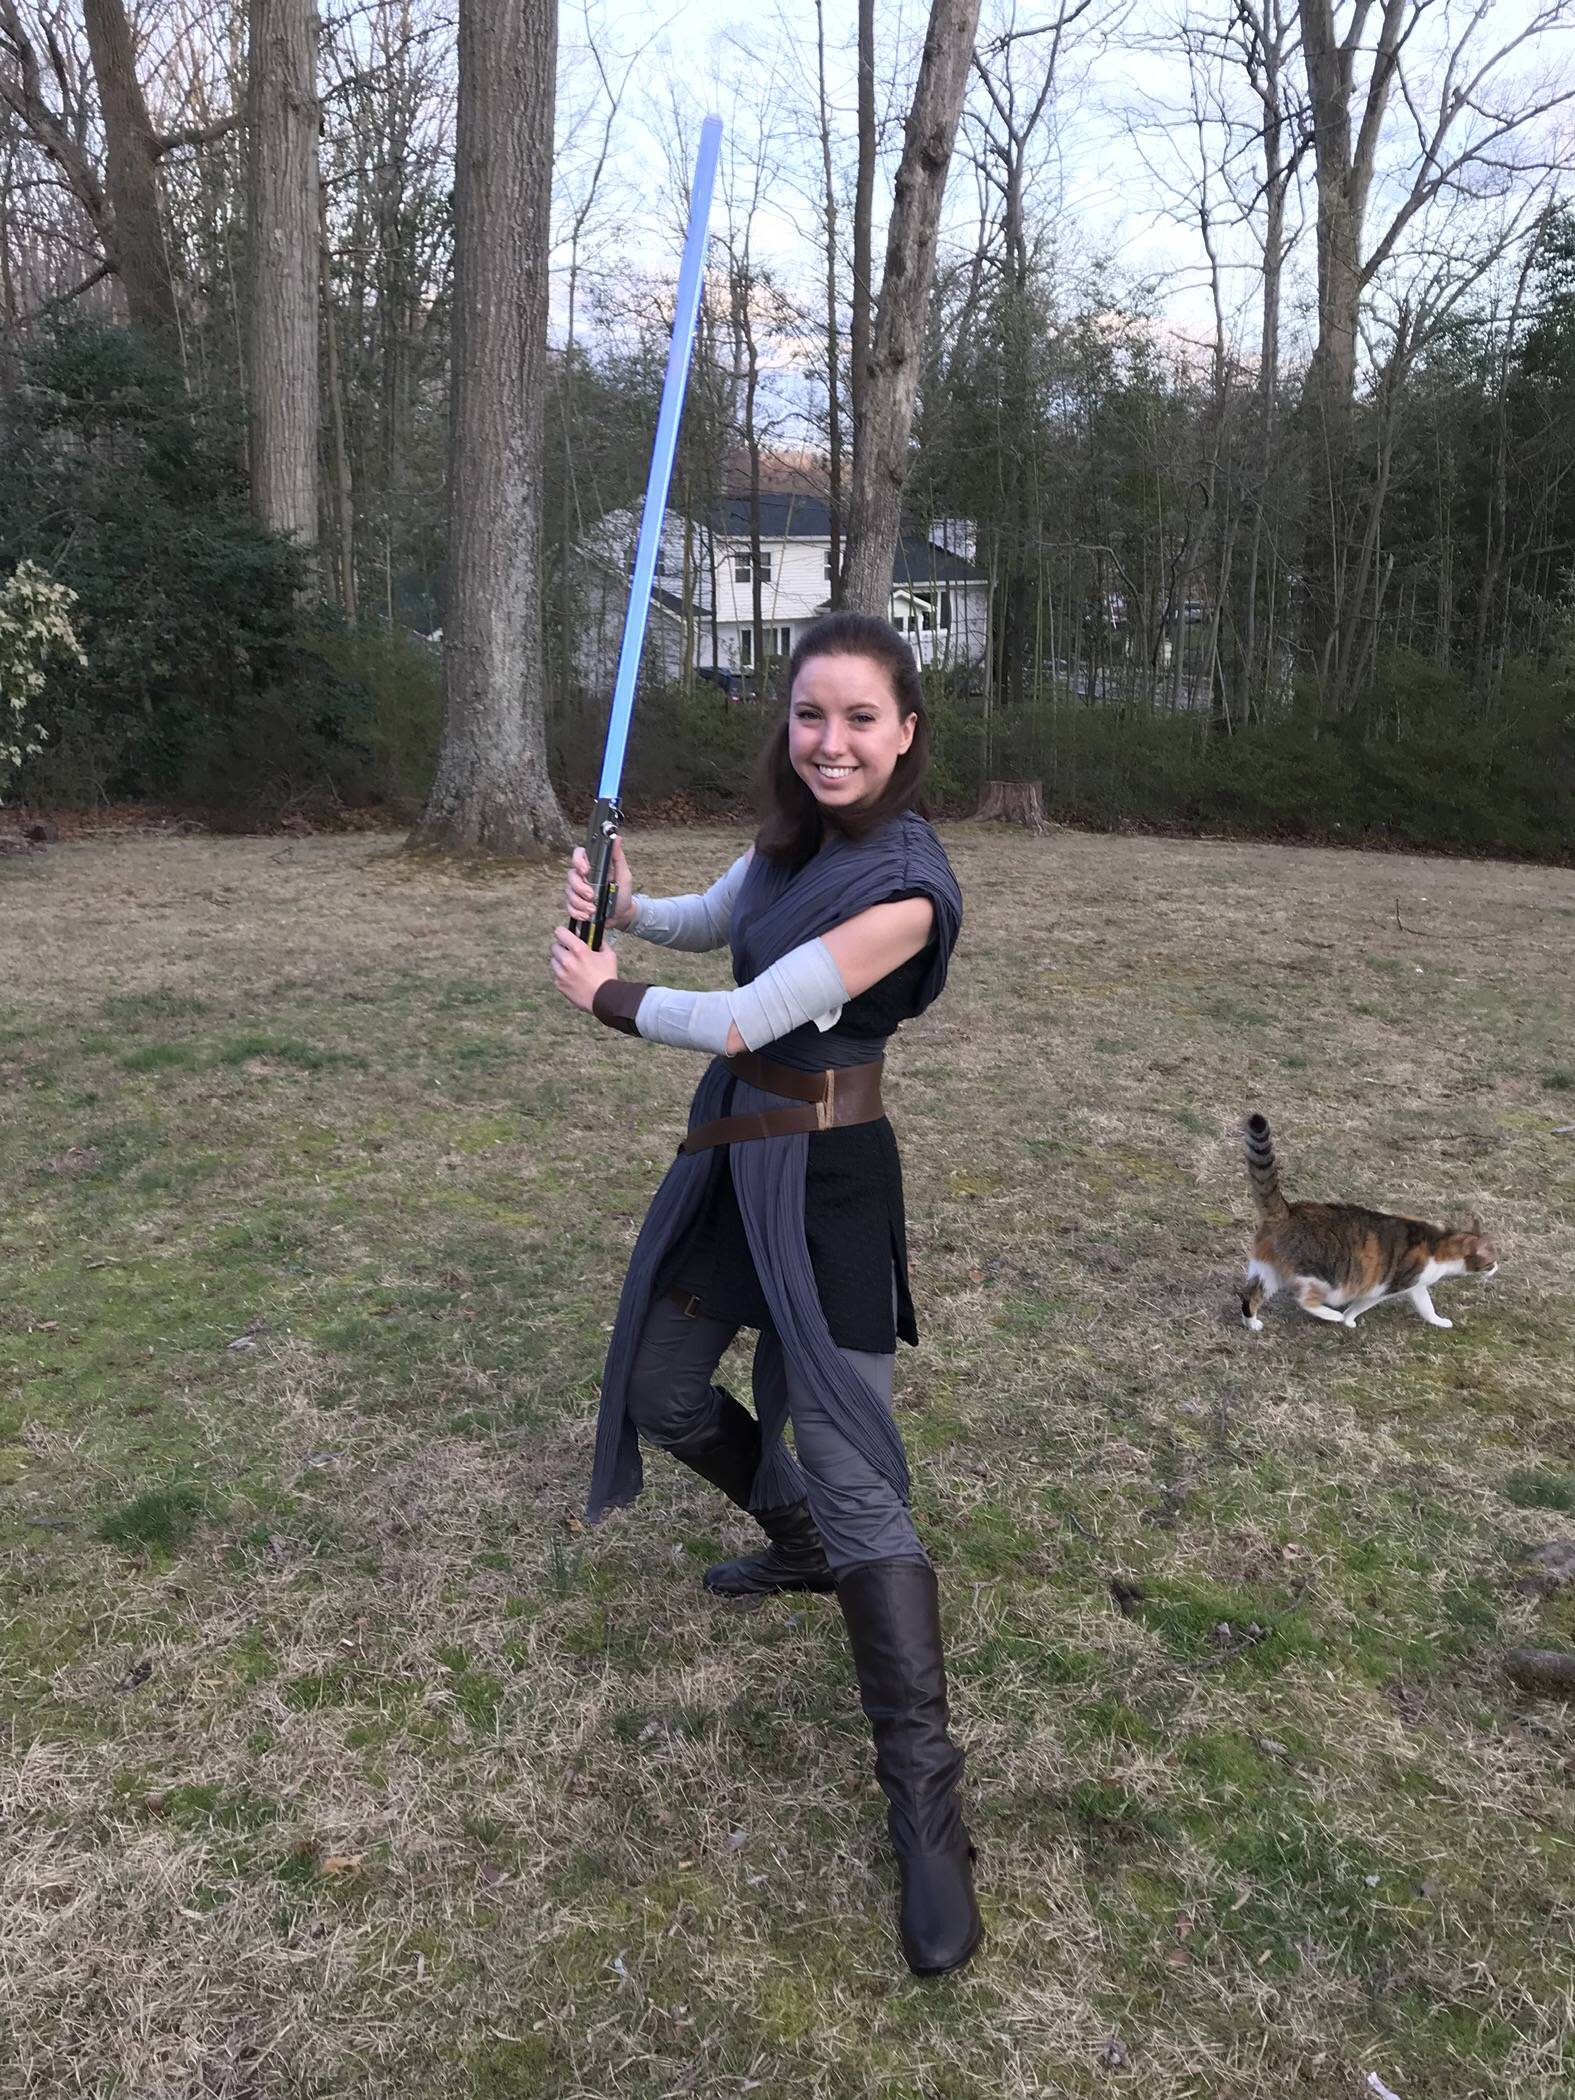 For May the Fourth, I present my completed Rey cosplay - with bonus cat!